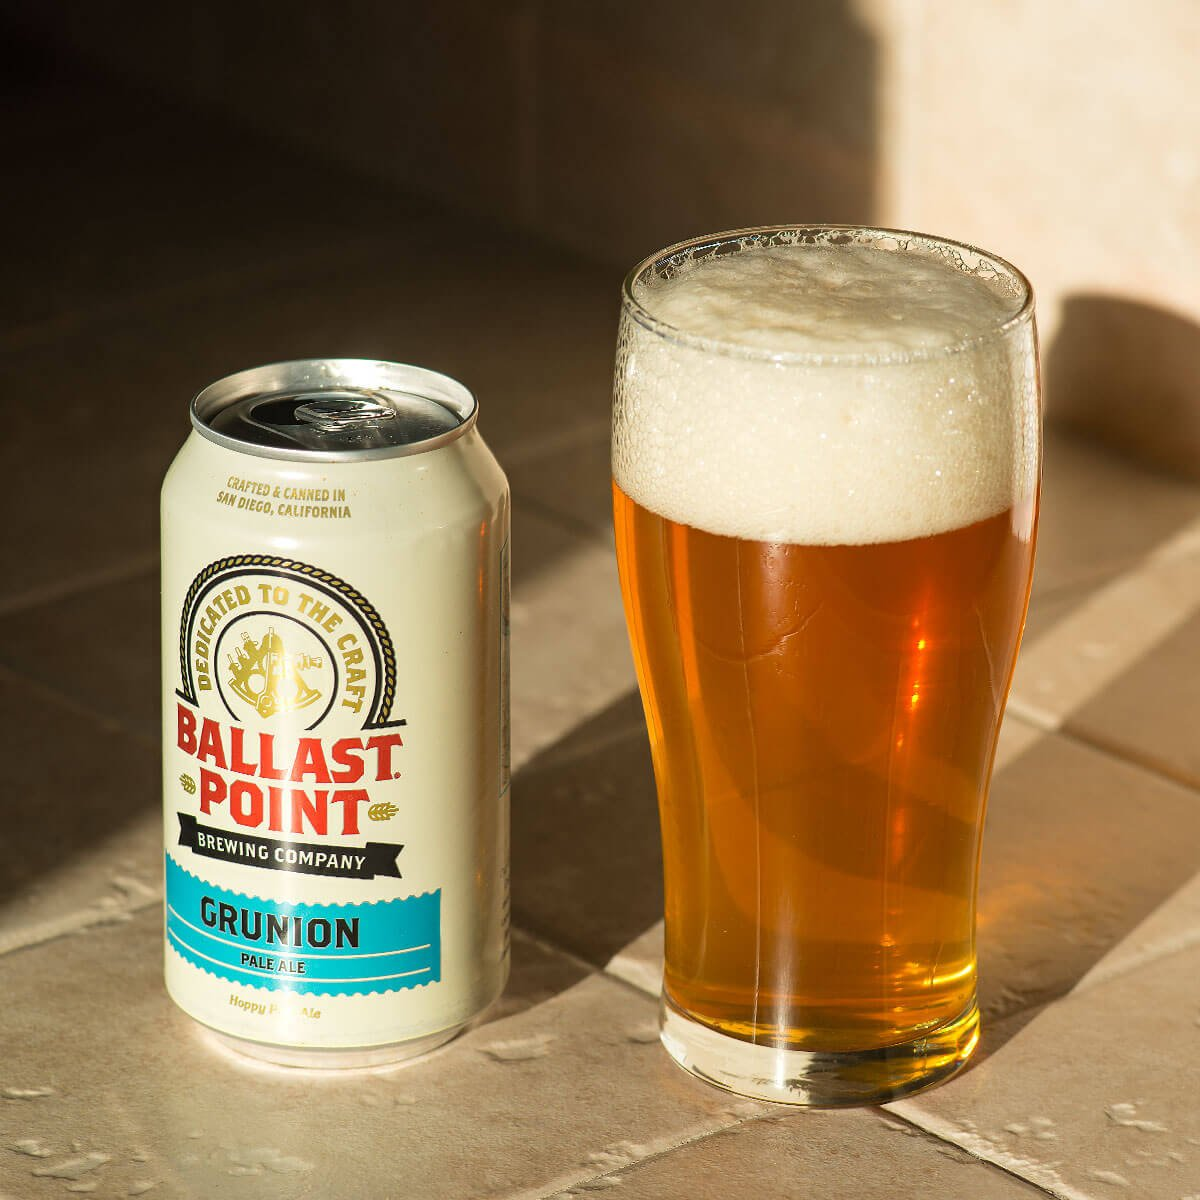 Grunion, an American Pale Ale by Ballast Point Brewing Company